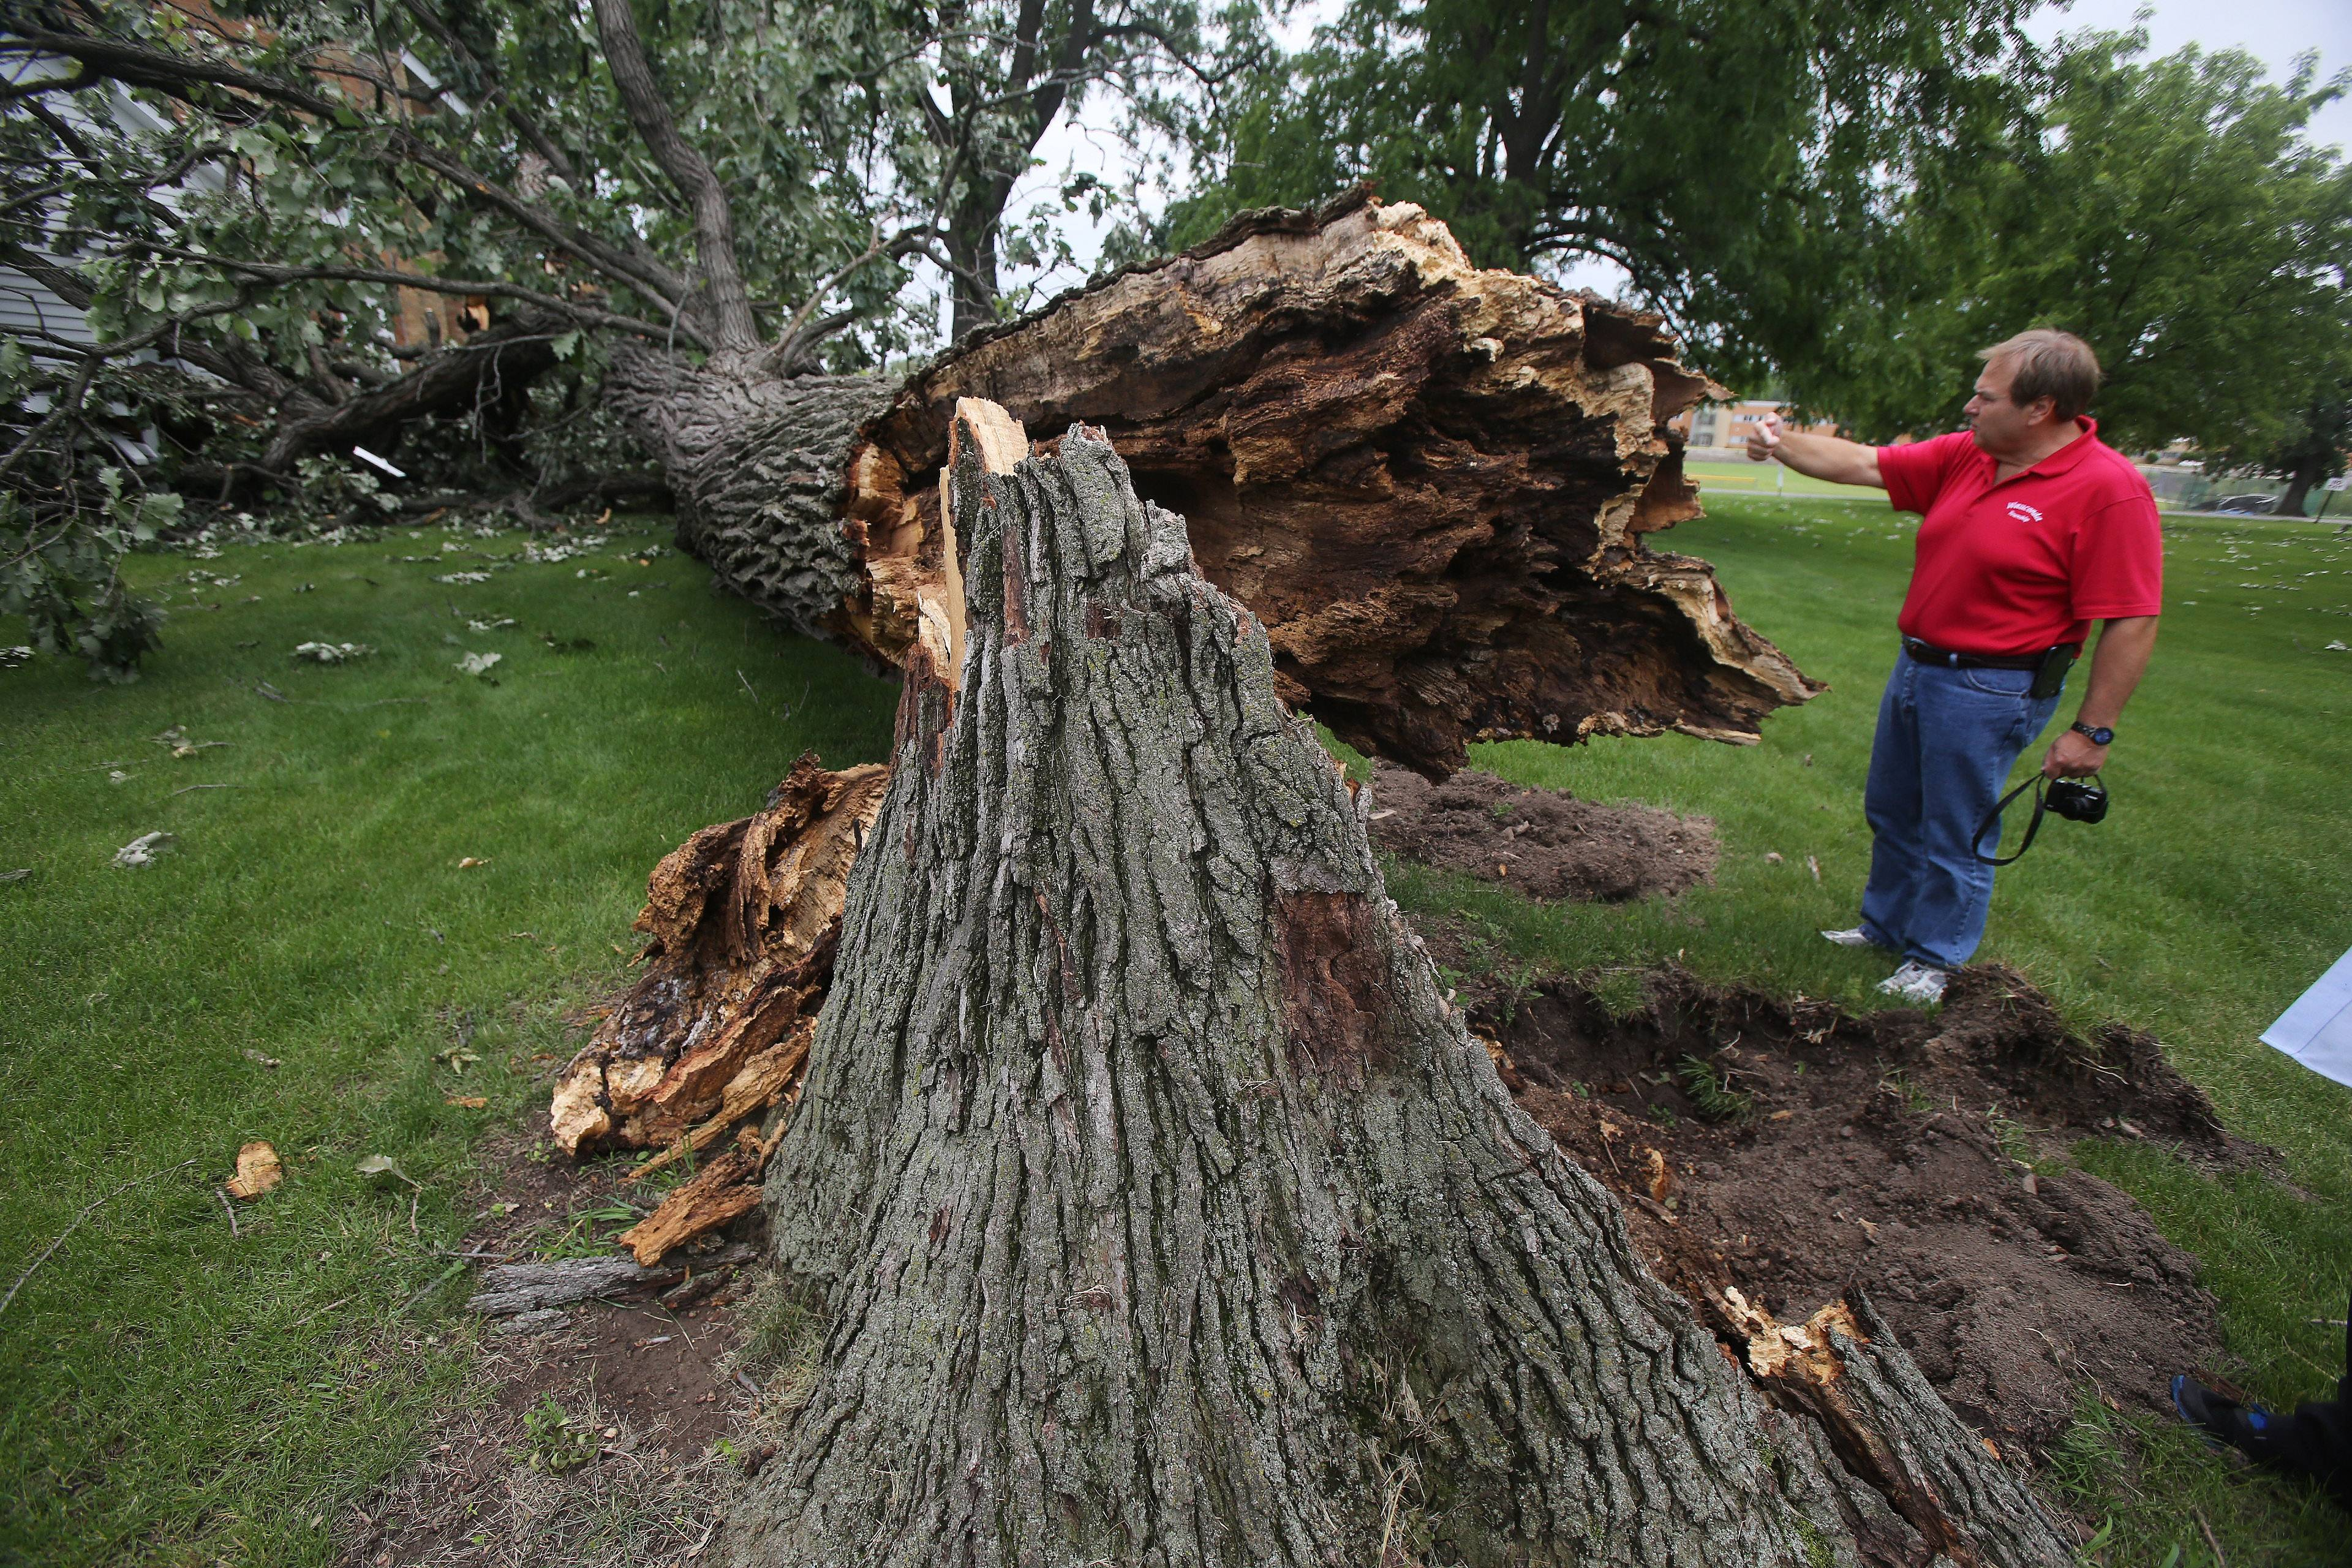 Wauconda Township Supervisor Glenn Swanson discusses the damage done by a tree that fell and hit the back porch of the historic Andrew C. Cook House in Wauconda during a storm Saturday. Officials said the tree was about 200 years old.